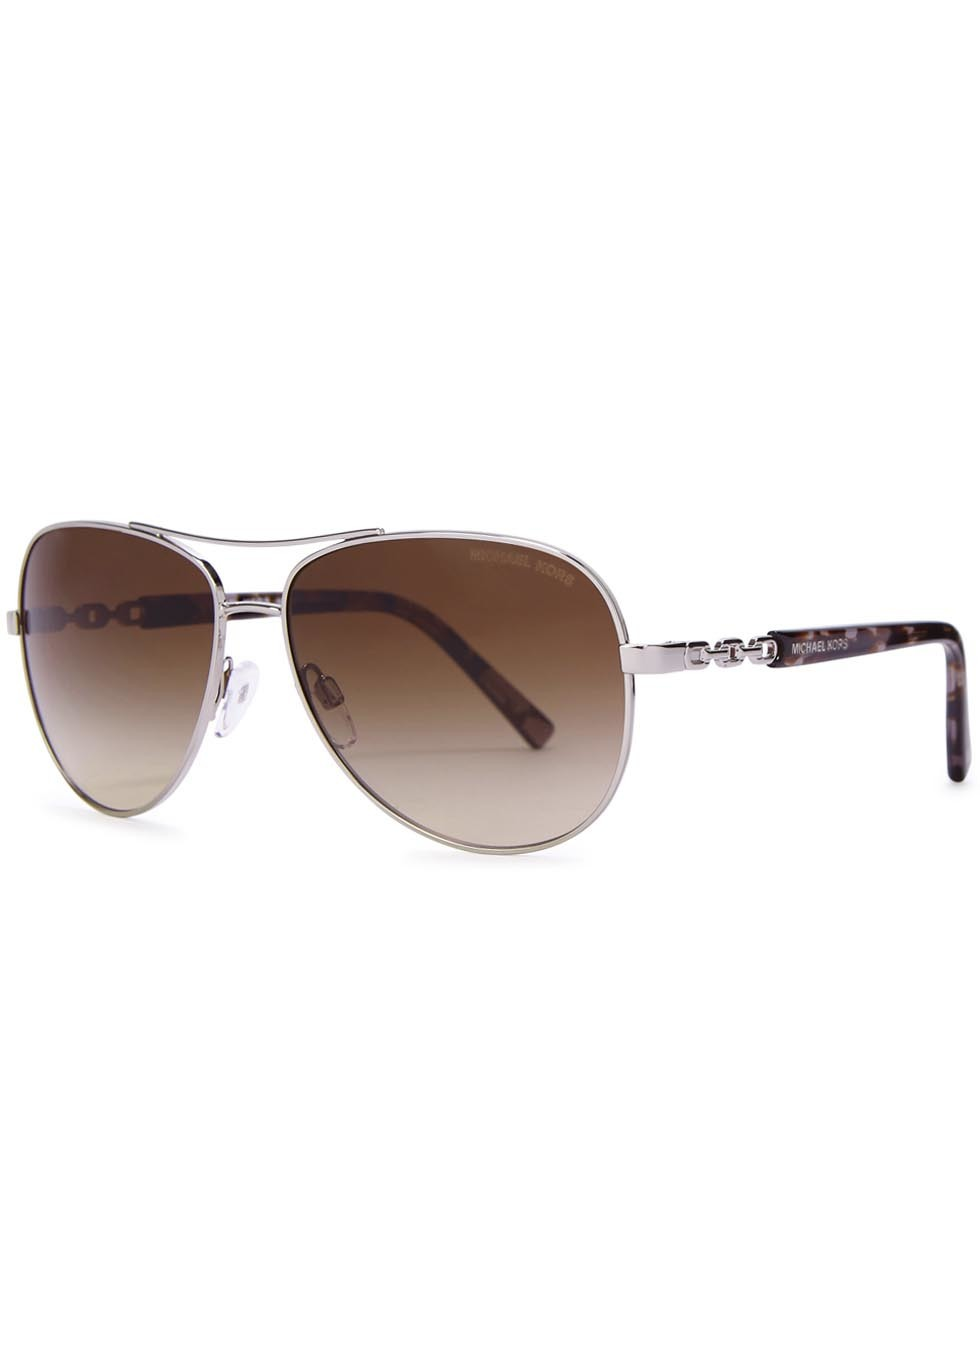 Sabina Iii Aviator Style Sunglasses - predominant colour: chocolate brown; secondary colour: gold; occasions: casual, holiday; style: aviator; size: standard; material: chain/metal; pattern: two-tone; finish: metallic; season: a/w 2015; wardrobe: highlight